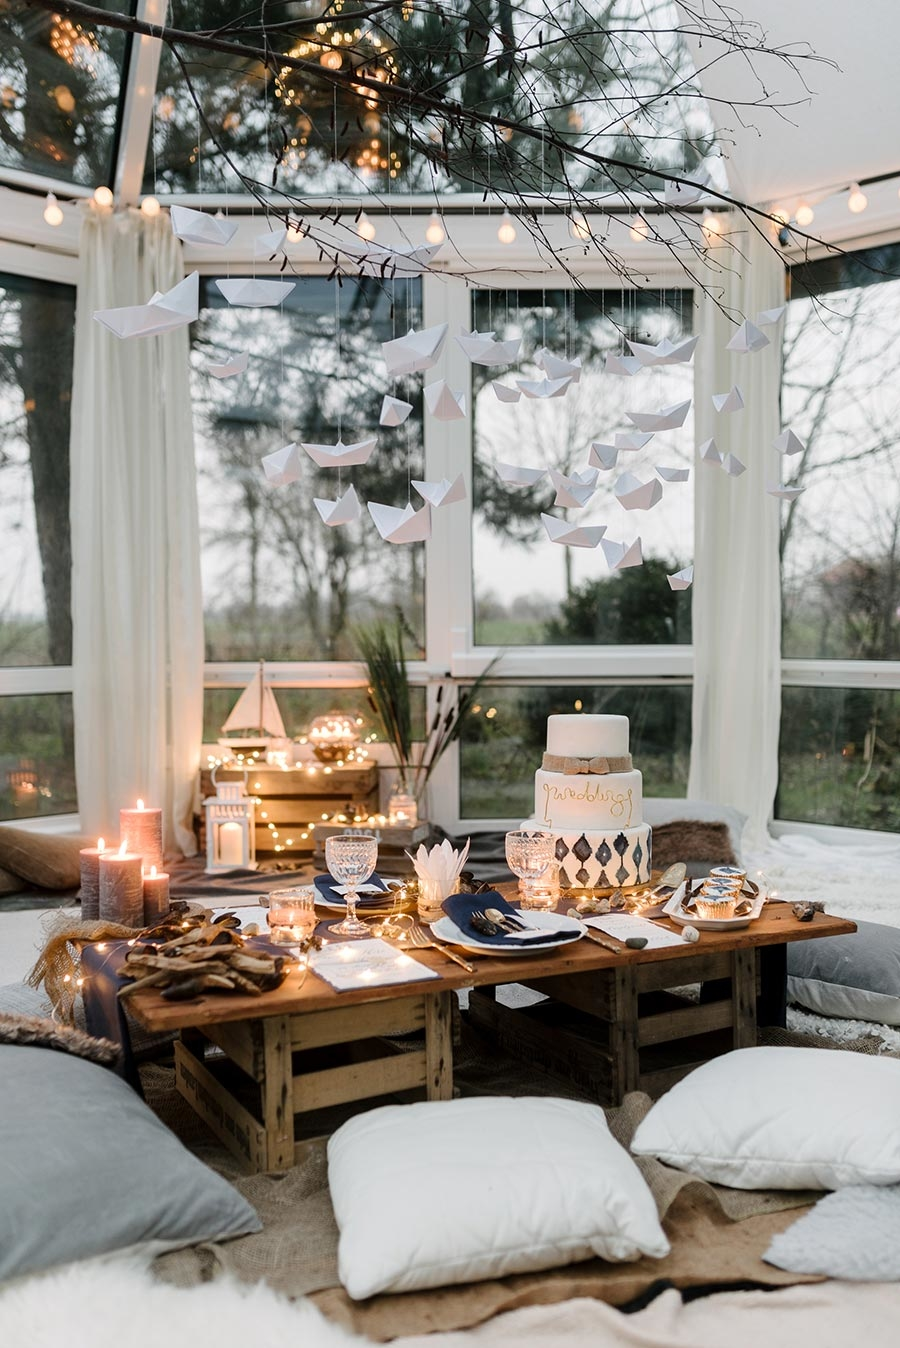 Hygge home lifestyle 4